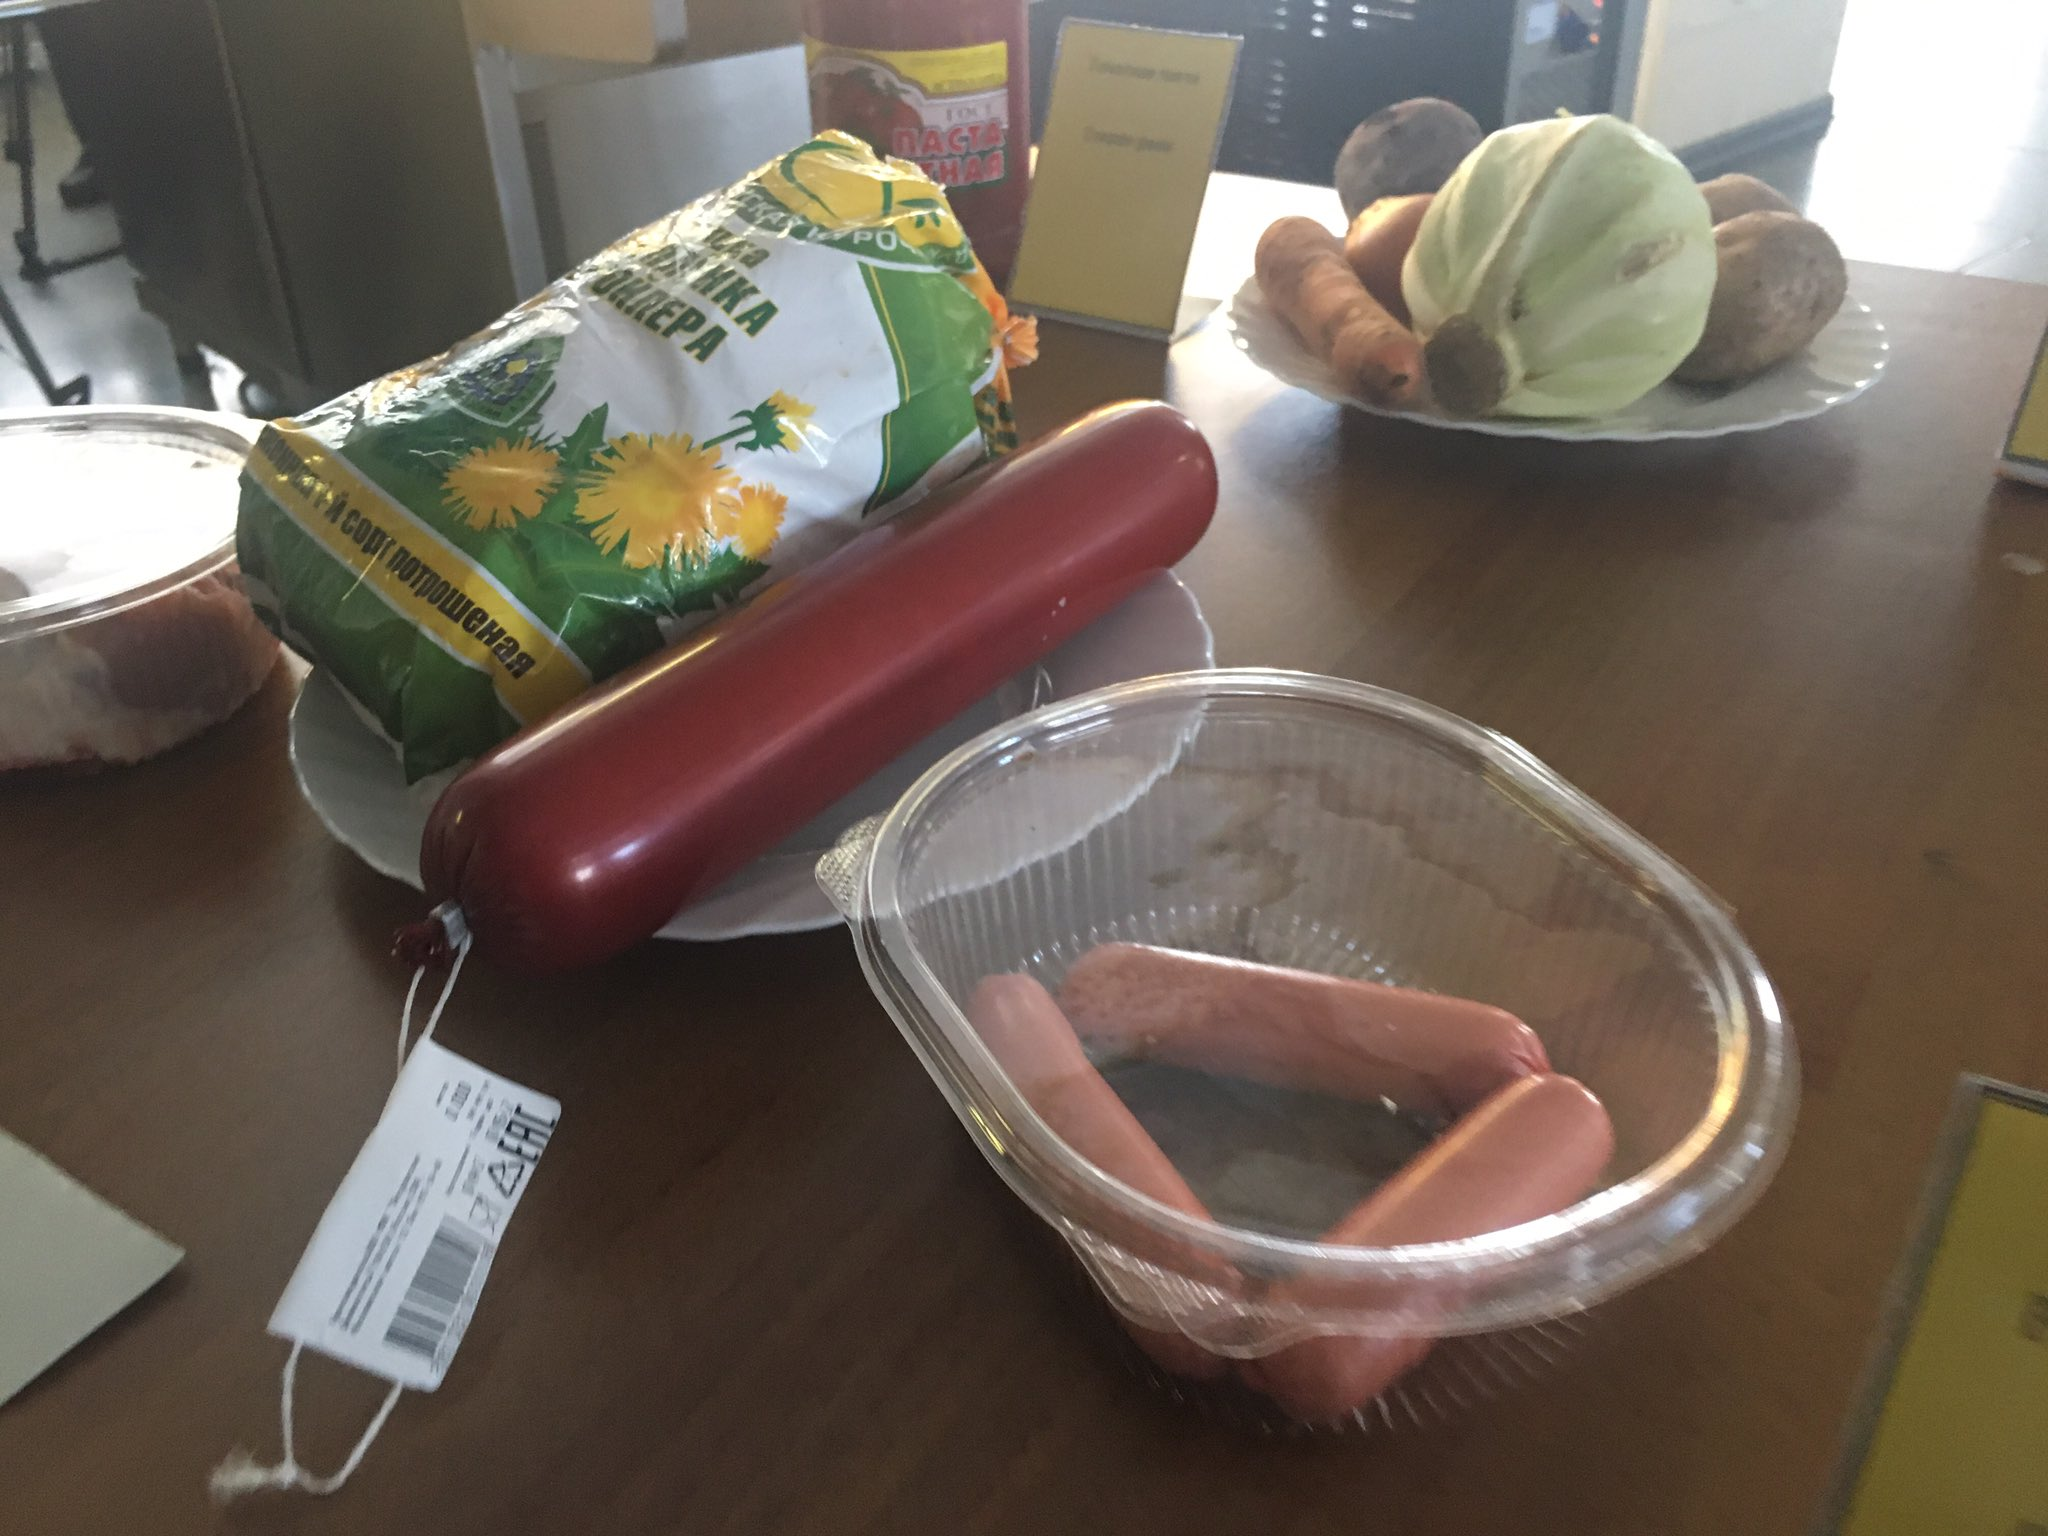 At the Alakurrti base, we're shown what Russian soldiers eat in the Arctic. https://t.co/pEsh2td09x